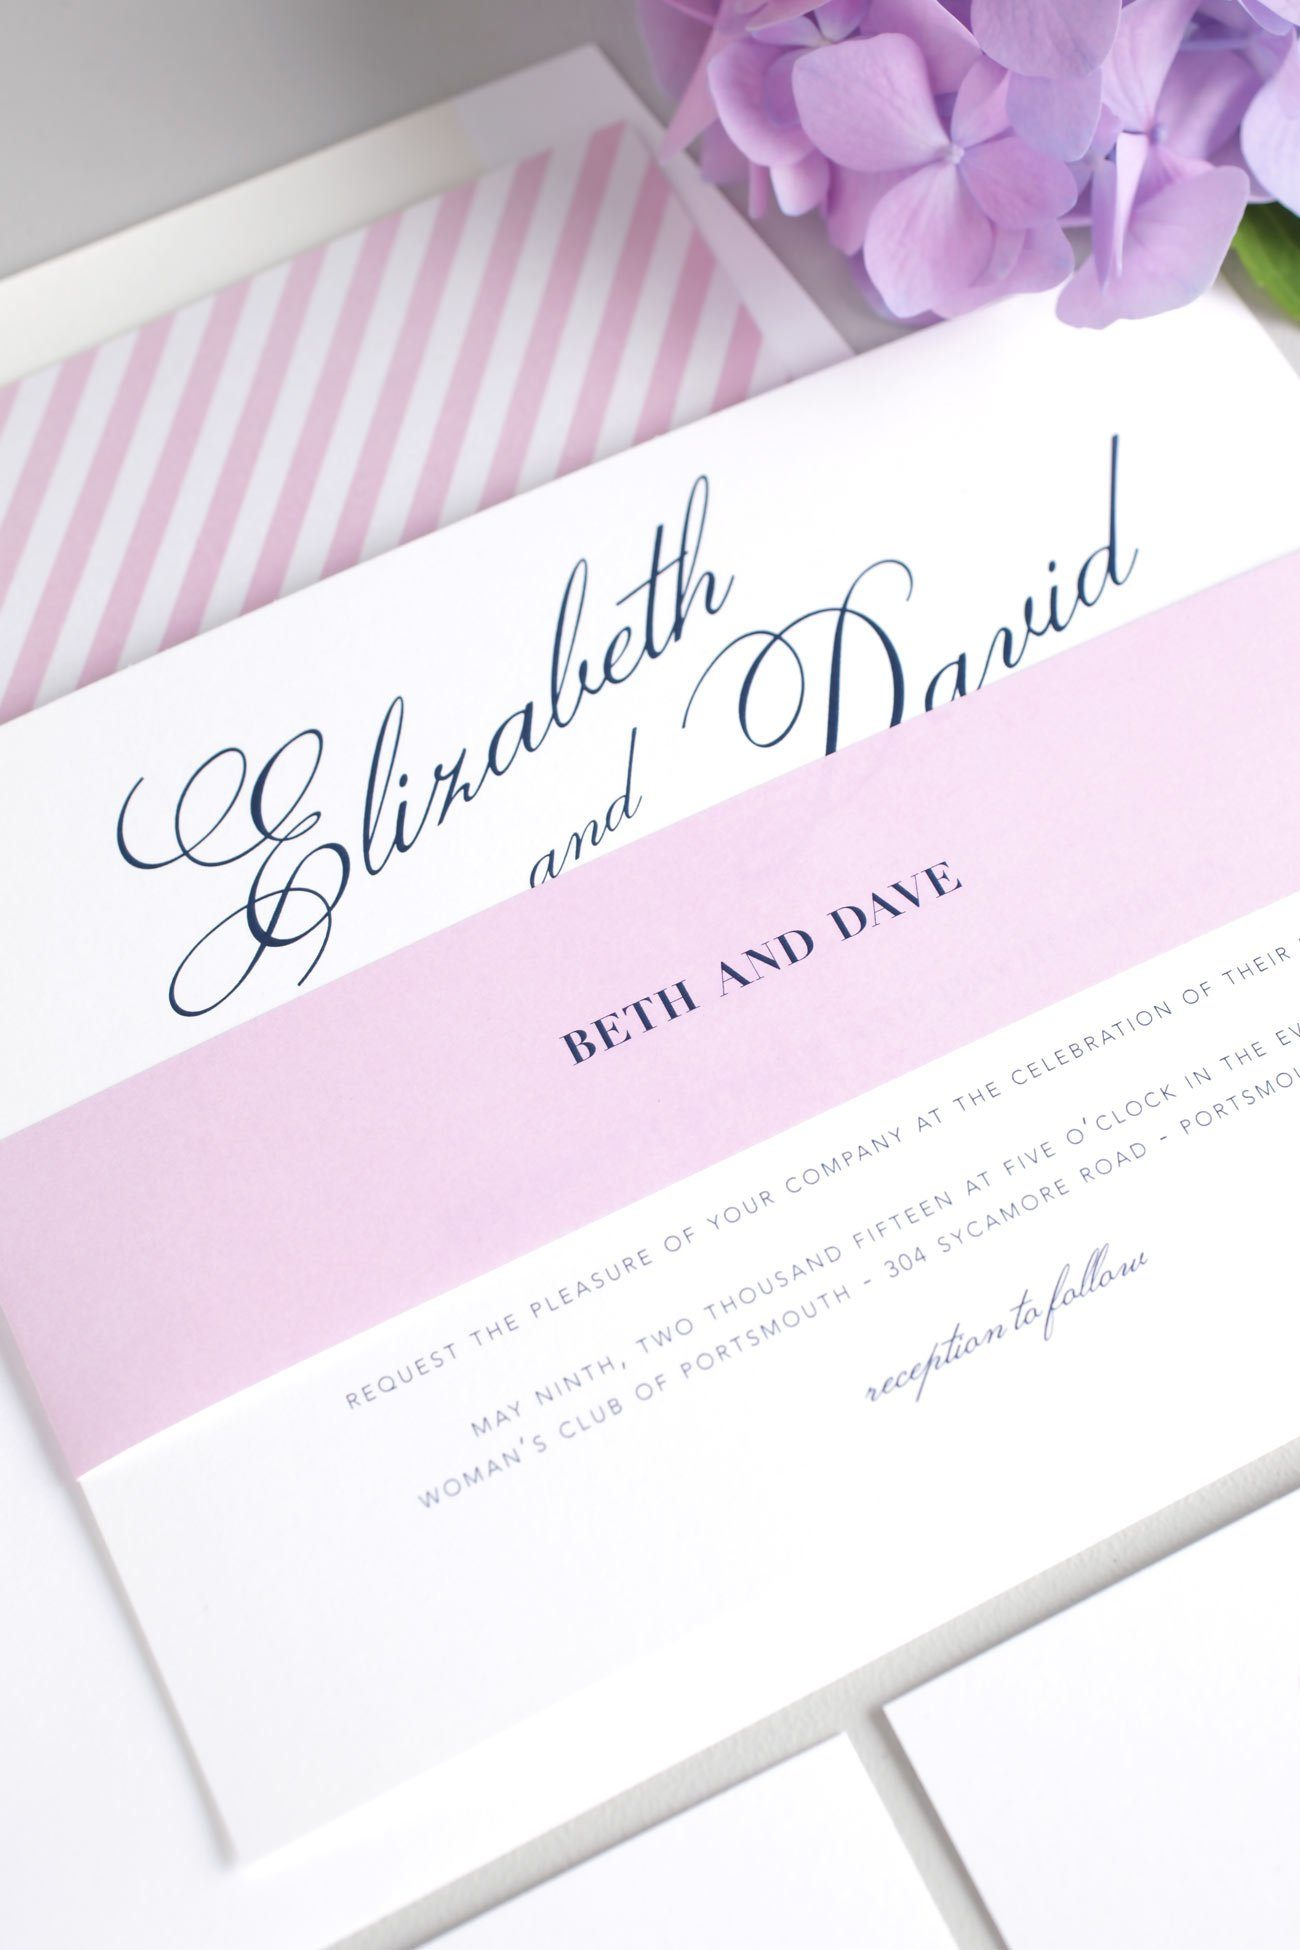 Vintage and romantic wedding invites with a striped envelope liner